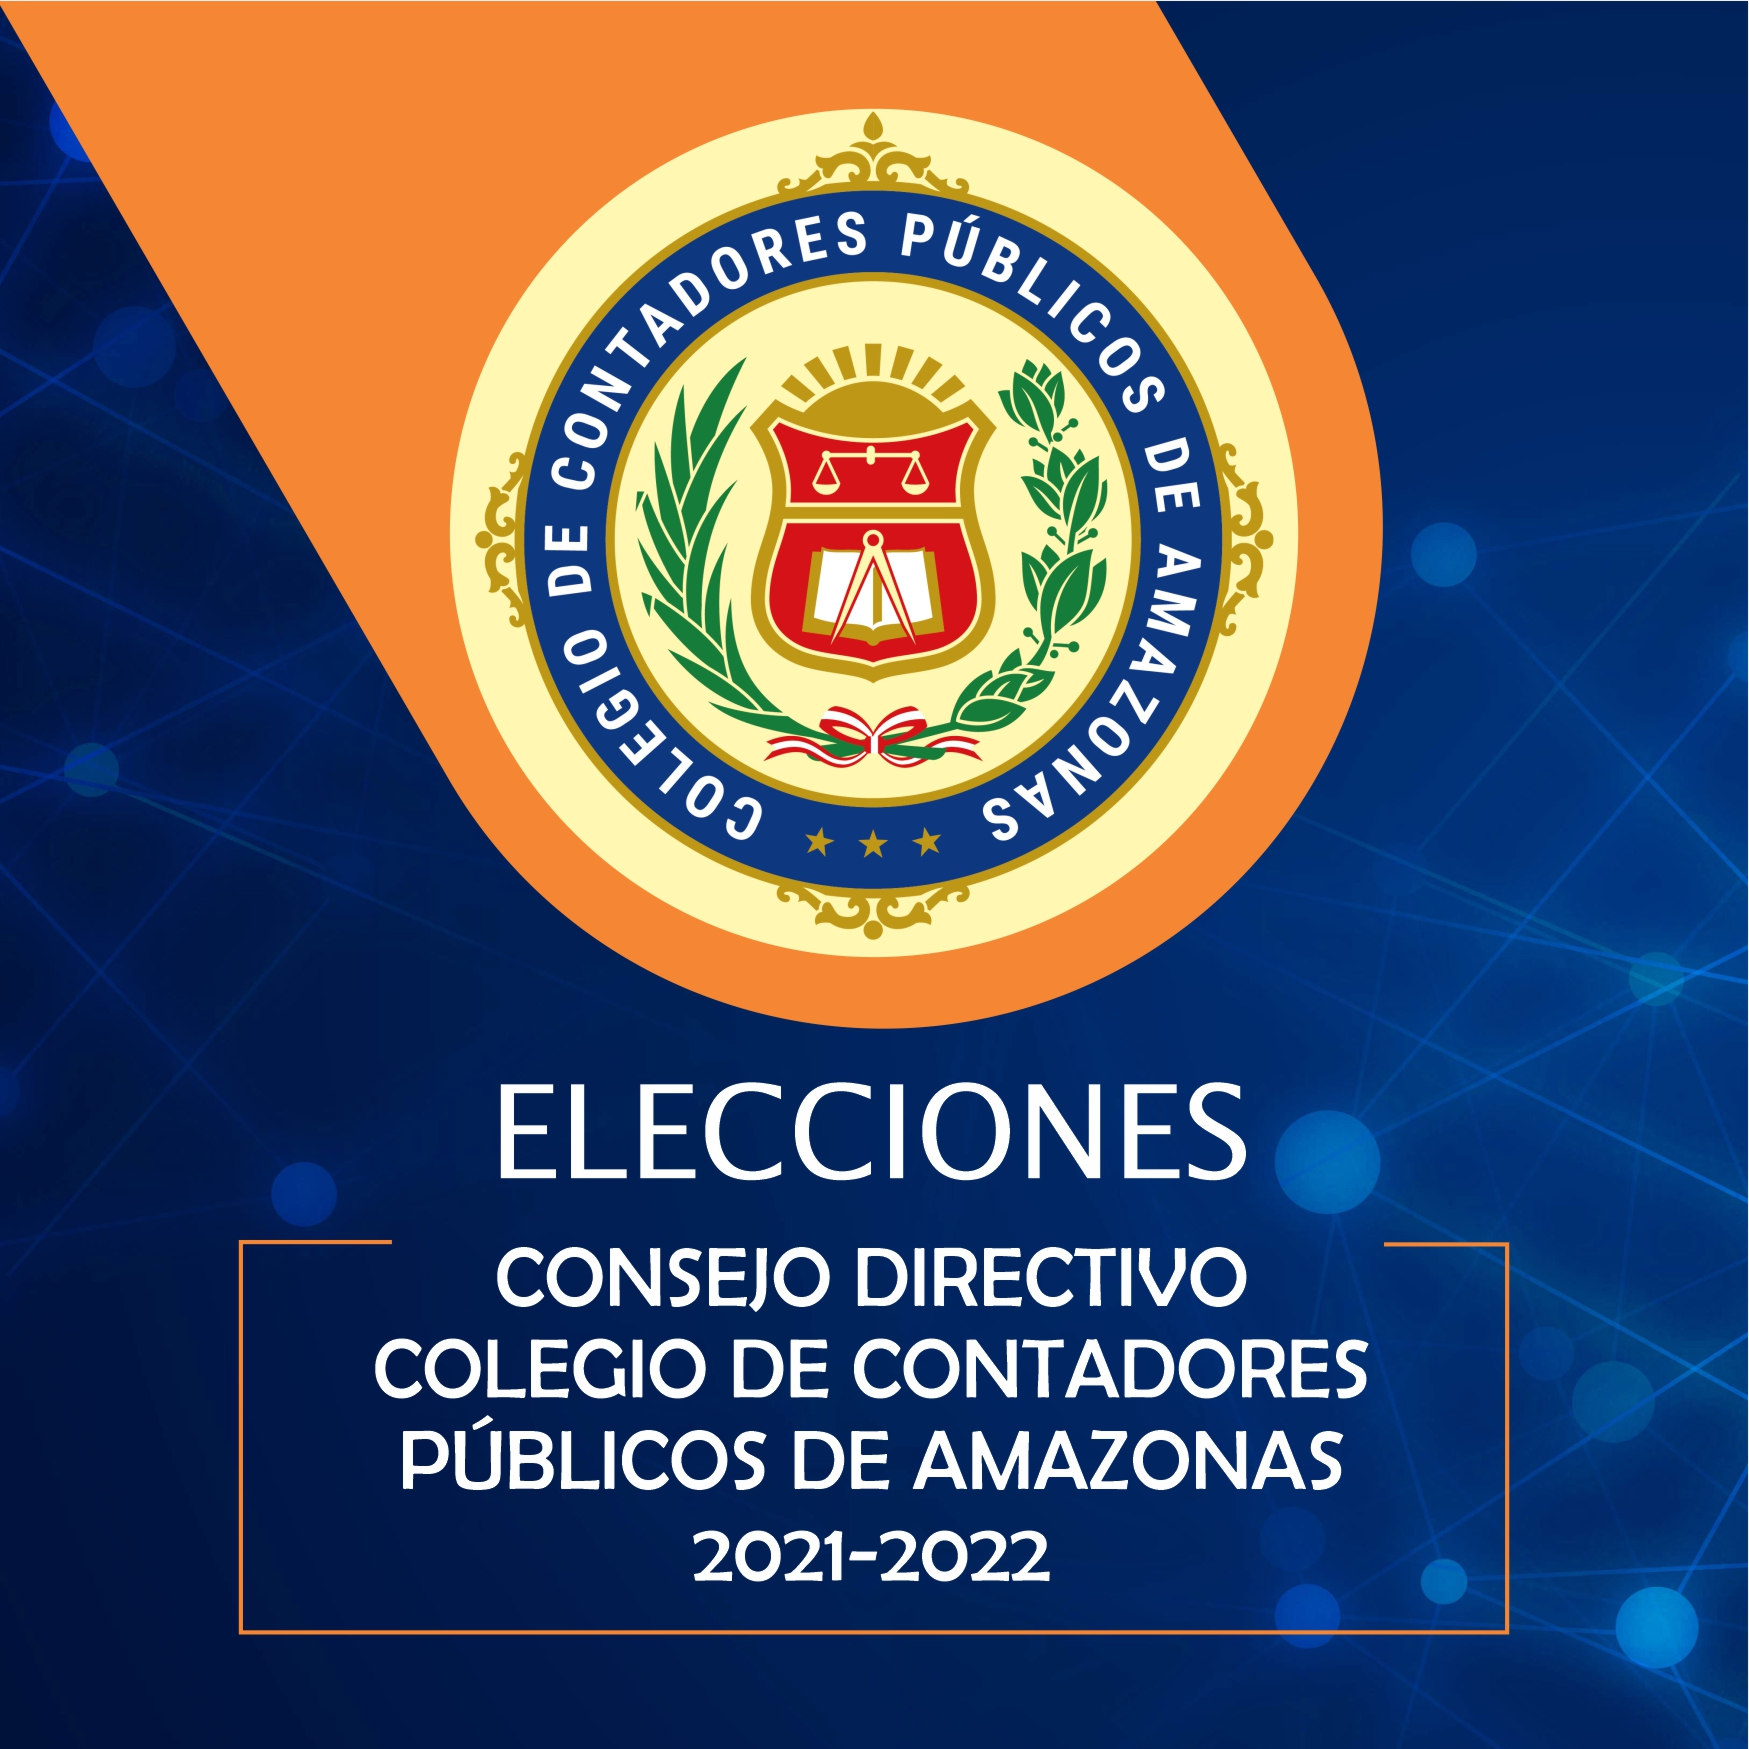 Thumbnail for the post titled: ELECCIONES : CONSEJO DIRECTIVO 2021-2022